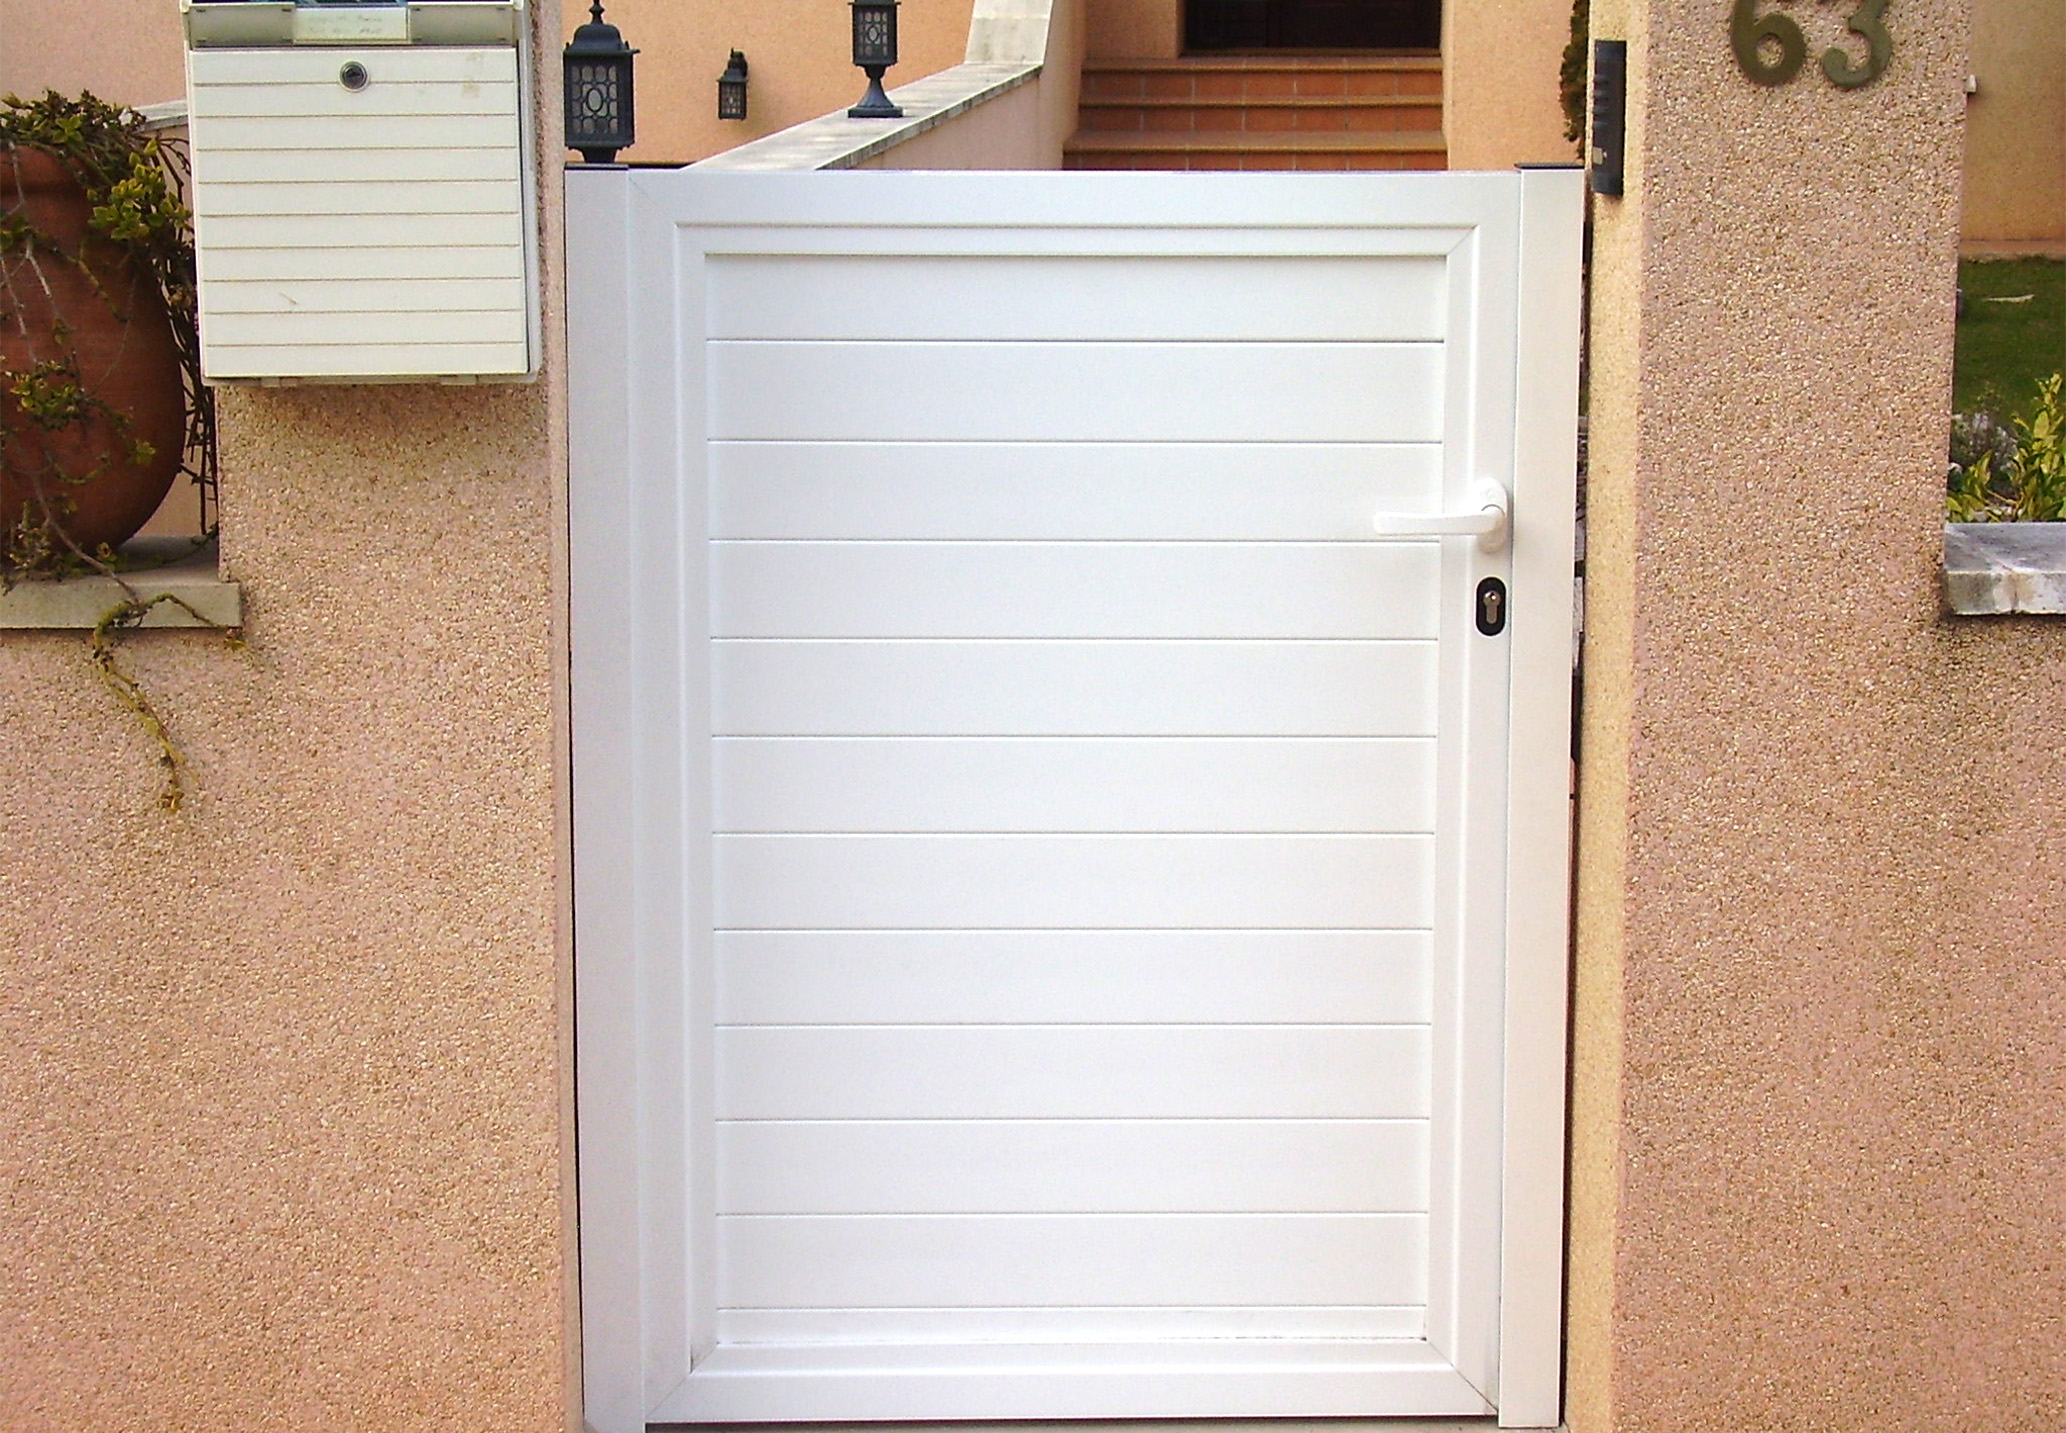 Puertas metalicas exterior jardin perfect simple puertas for Puertas metalicas exterior